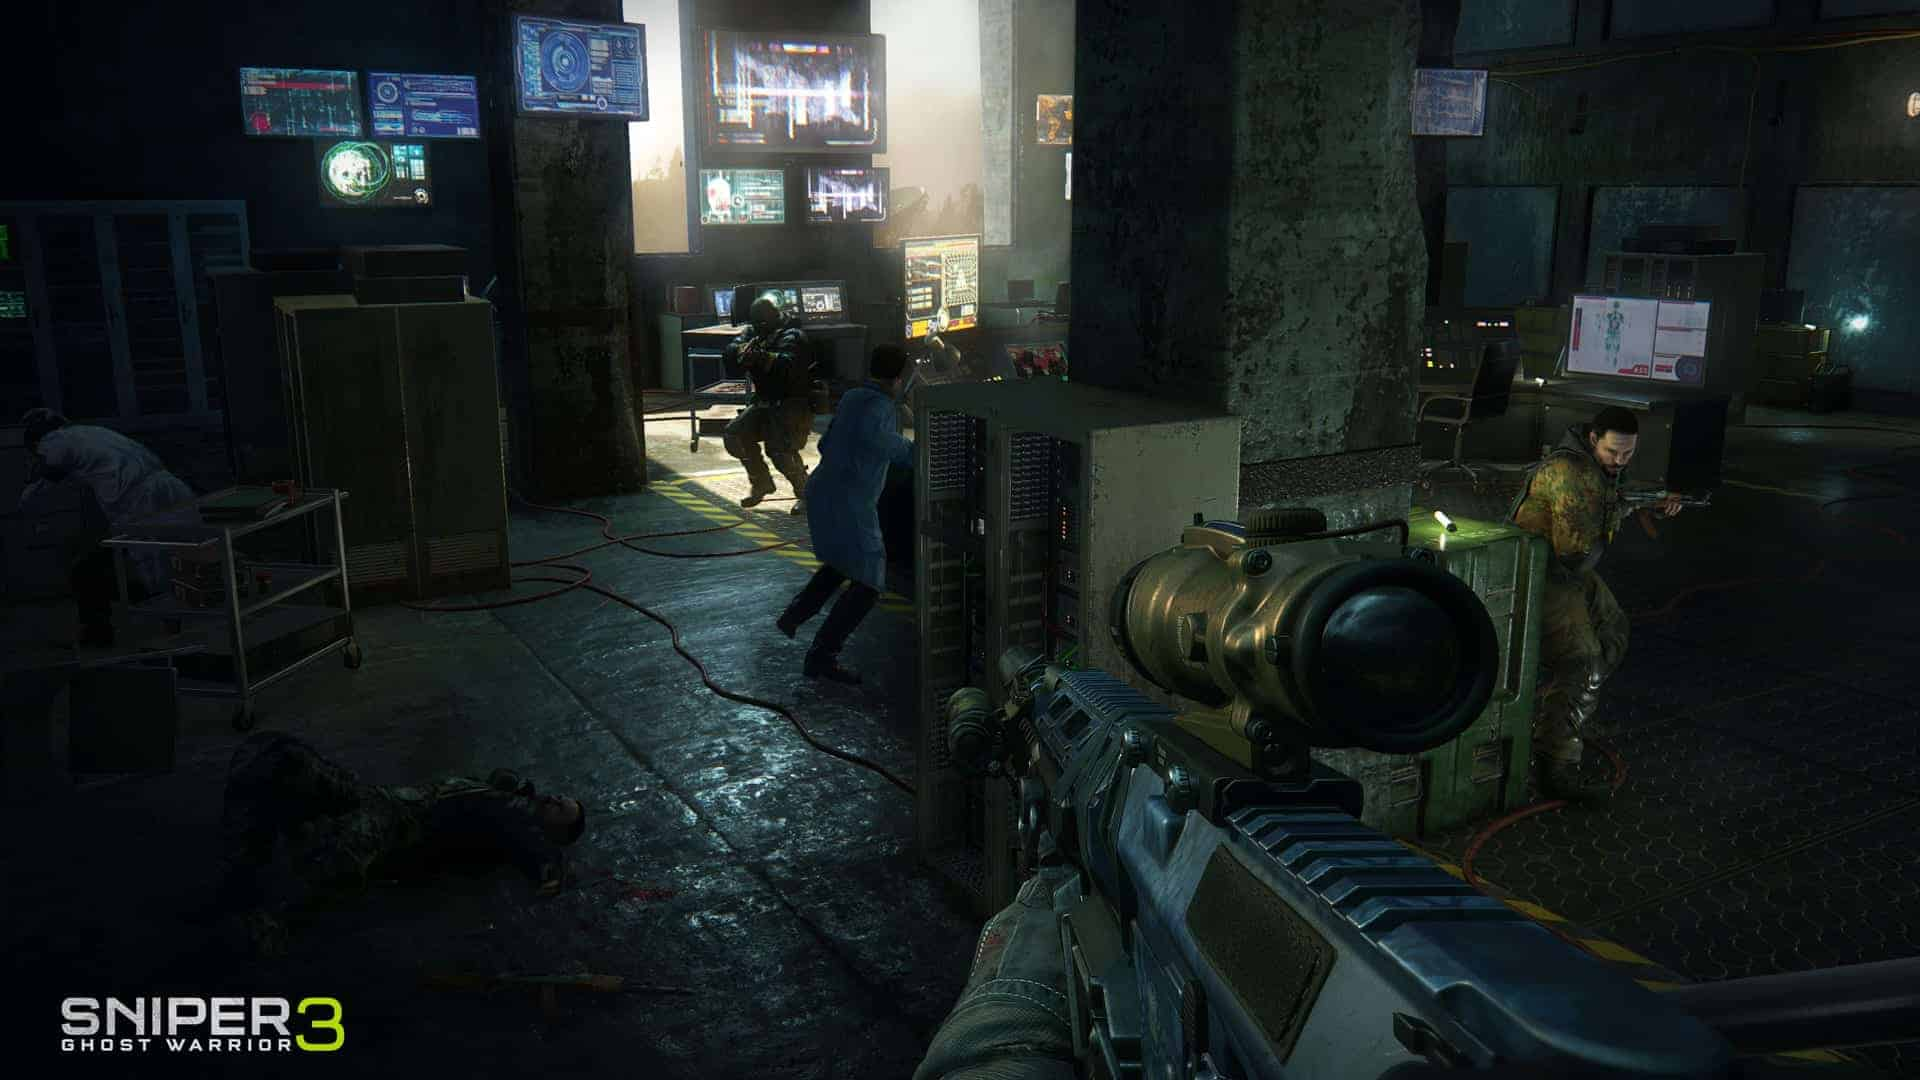 Sniper Ghost Warrior 3 game pc download free